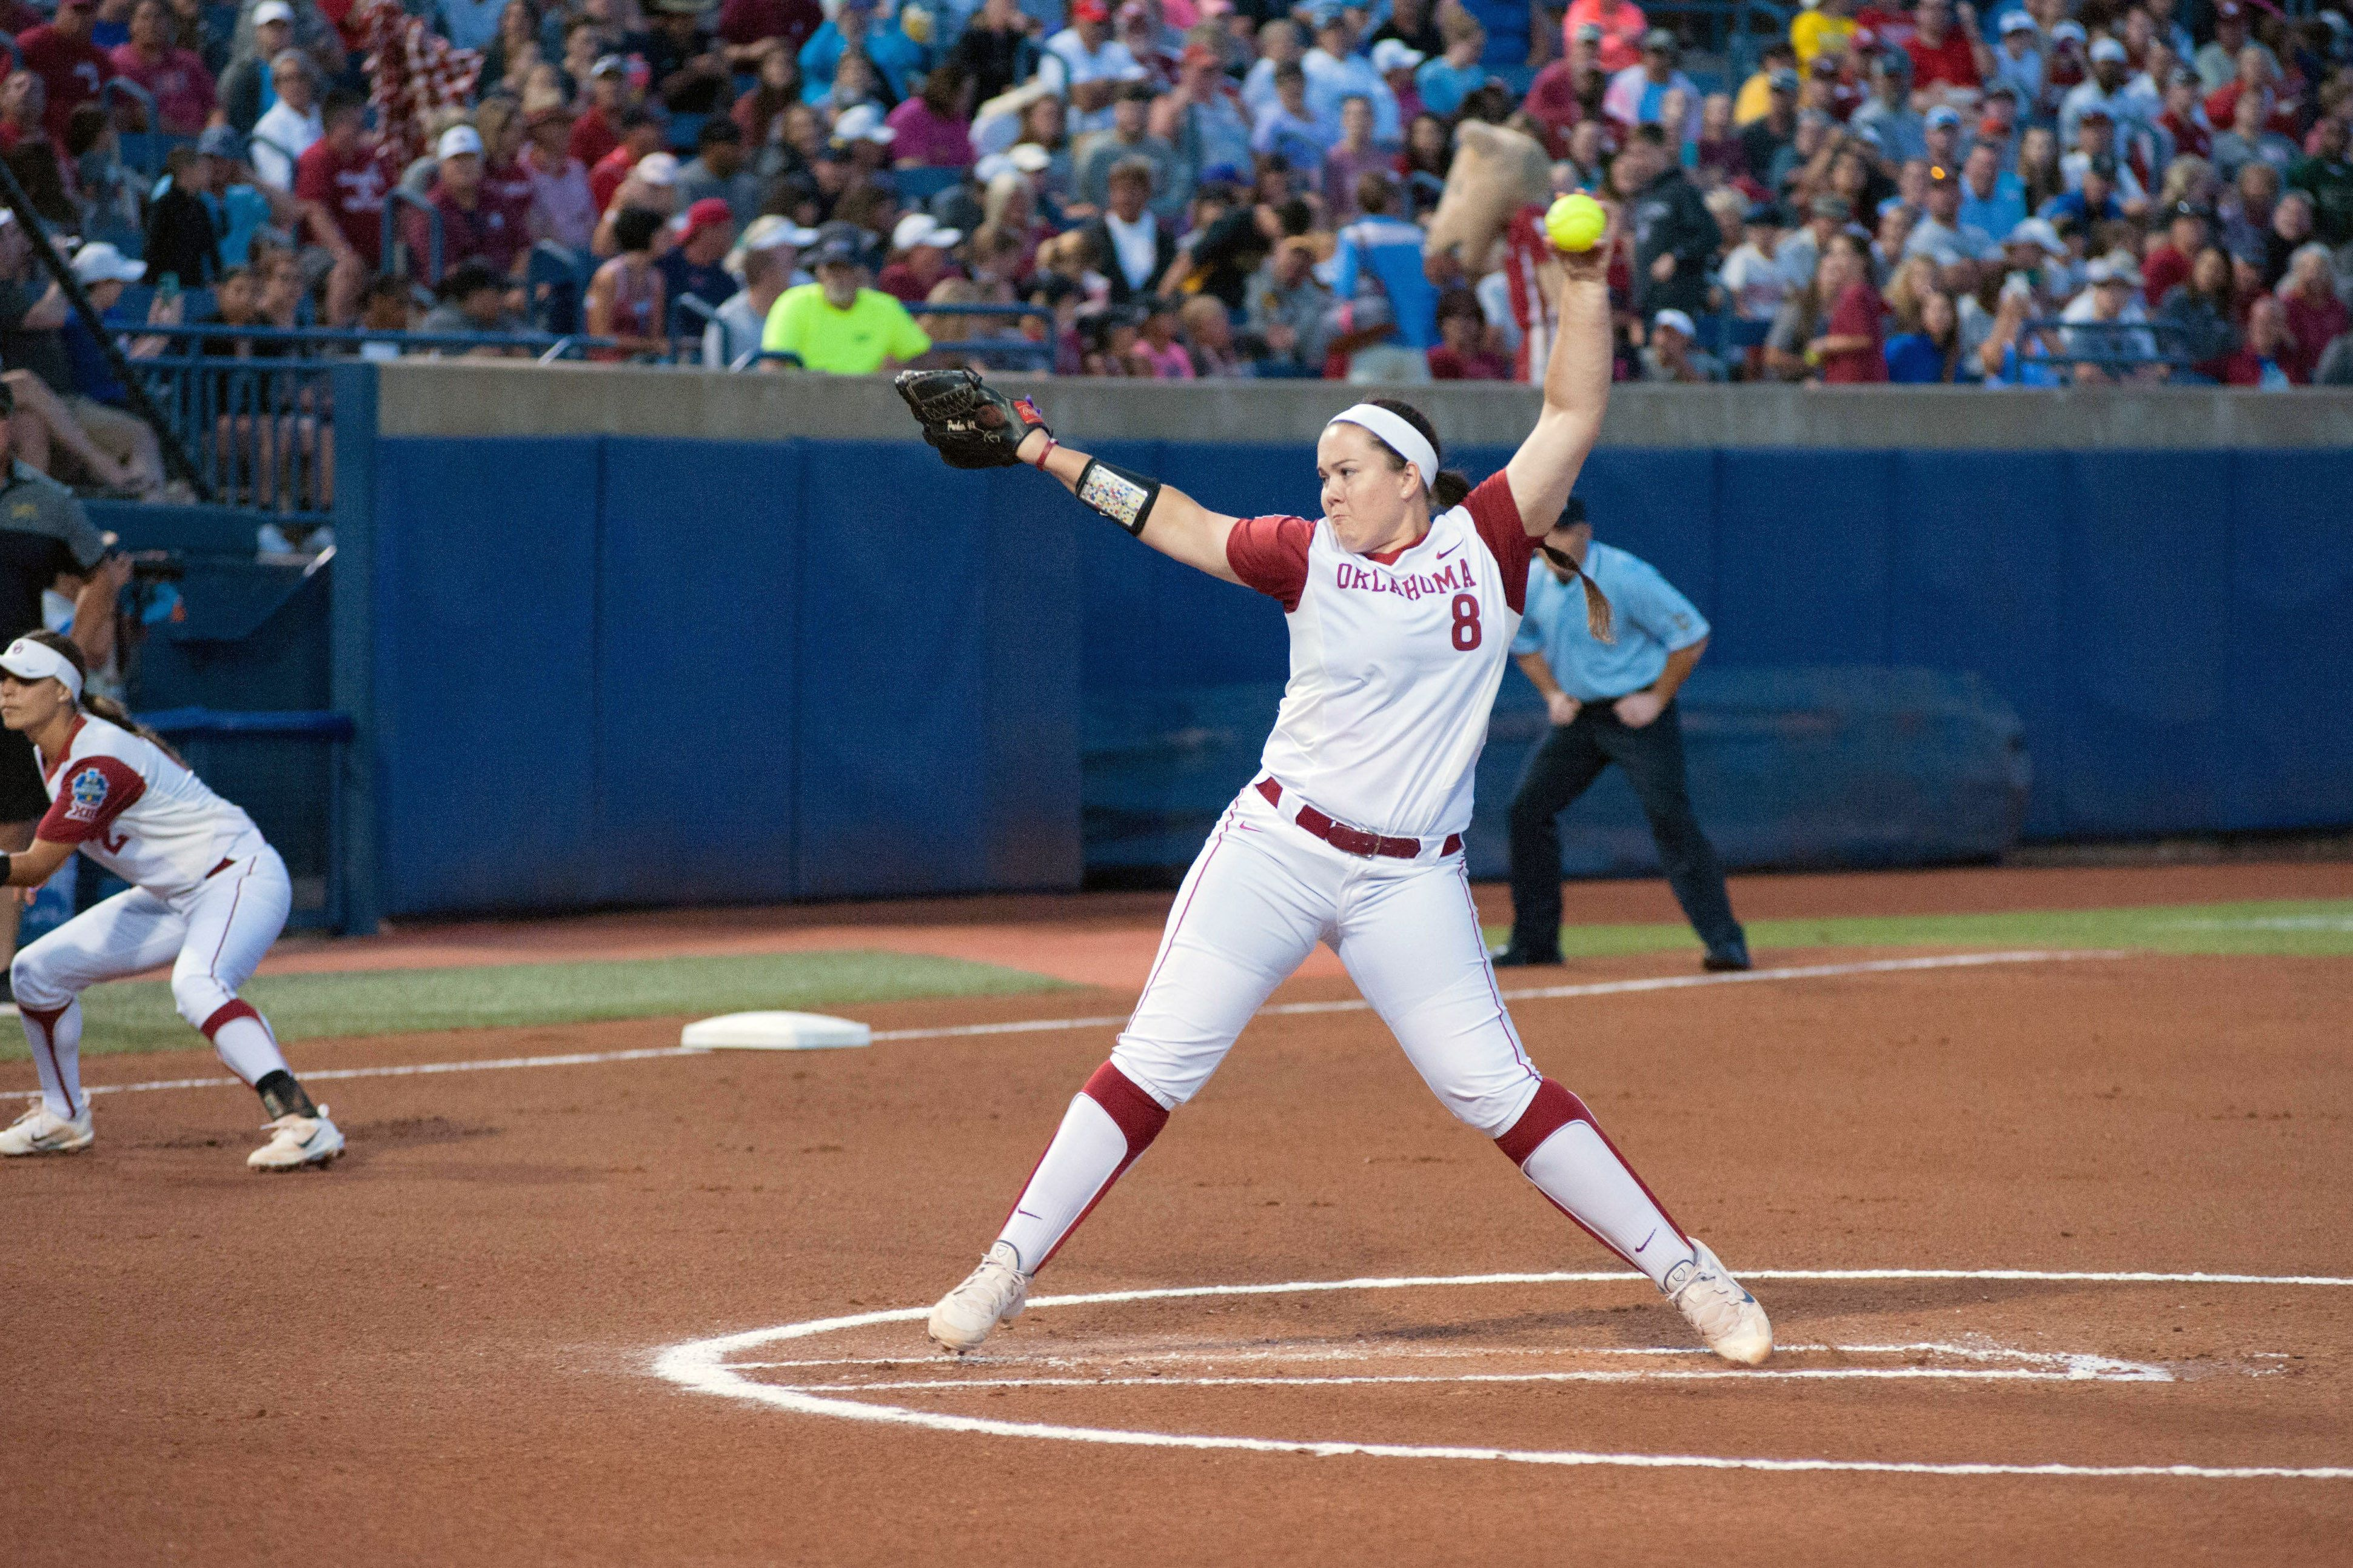 OKLAHOMA CITY, OK - JUNE 01:   Oklahoma University (8) pitcher Paige Parker pitching versus Baylor University on June 01, 2017, at the ASA Hall of Fame Stadium in Oklahoma City, OK. (Photo by Torrey Purvey/Icon Sportswire via Getty Images)